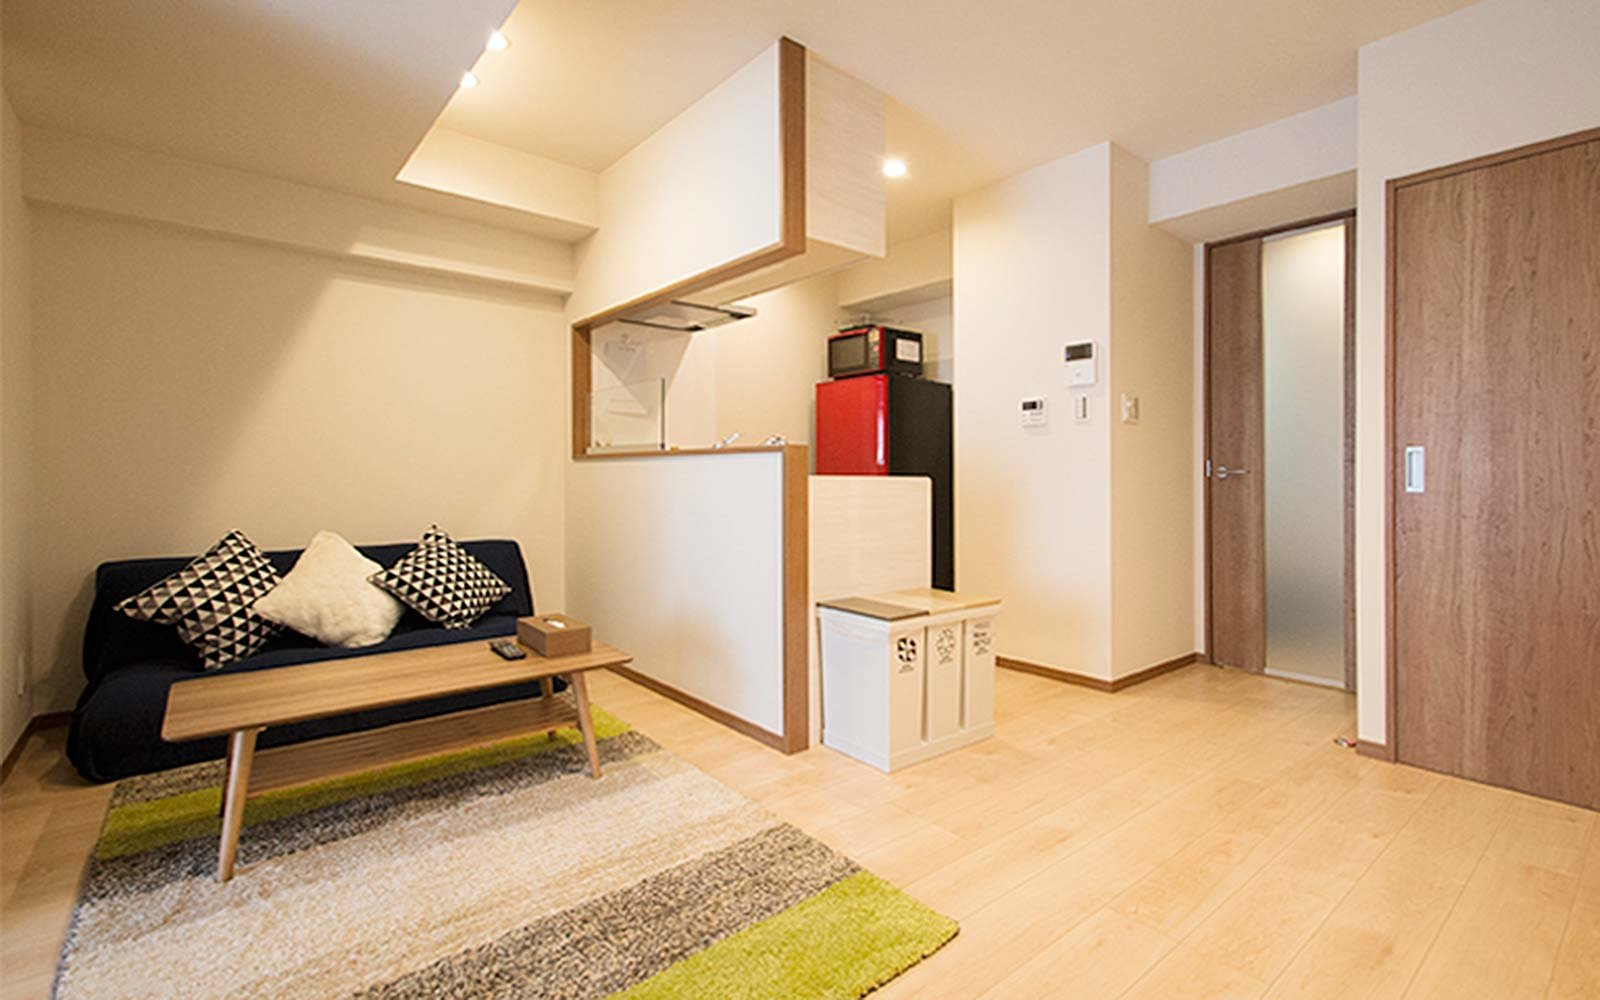 Tokyo Japan Vacation Holiday Apartment Rental Airbnb Luxury Ginza